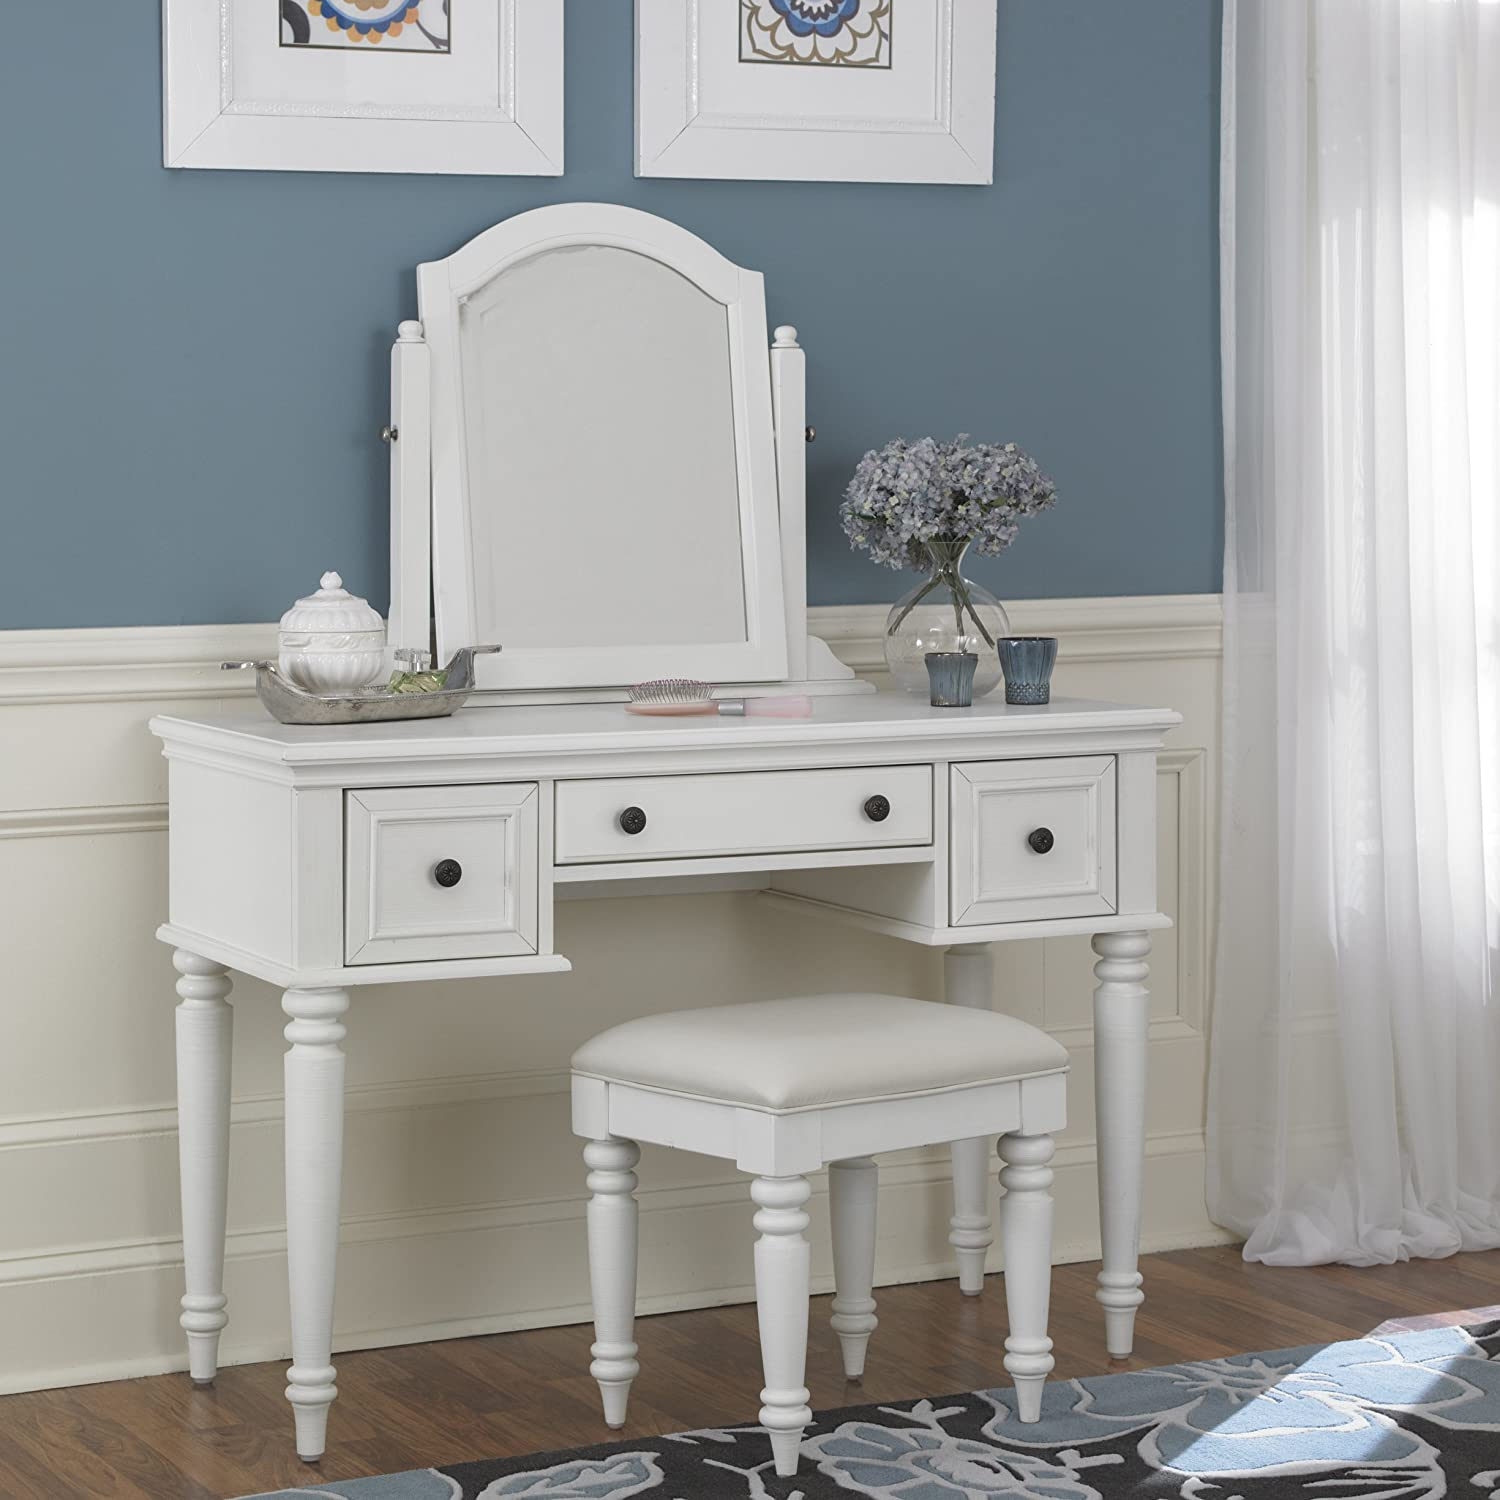 Amazon.com: Home Styles Bermuda Vanity and Bench, White Finish ...